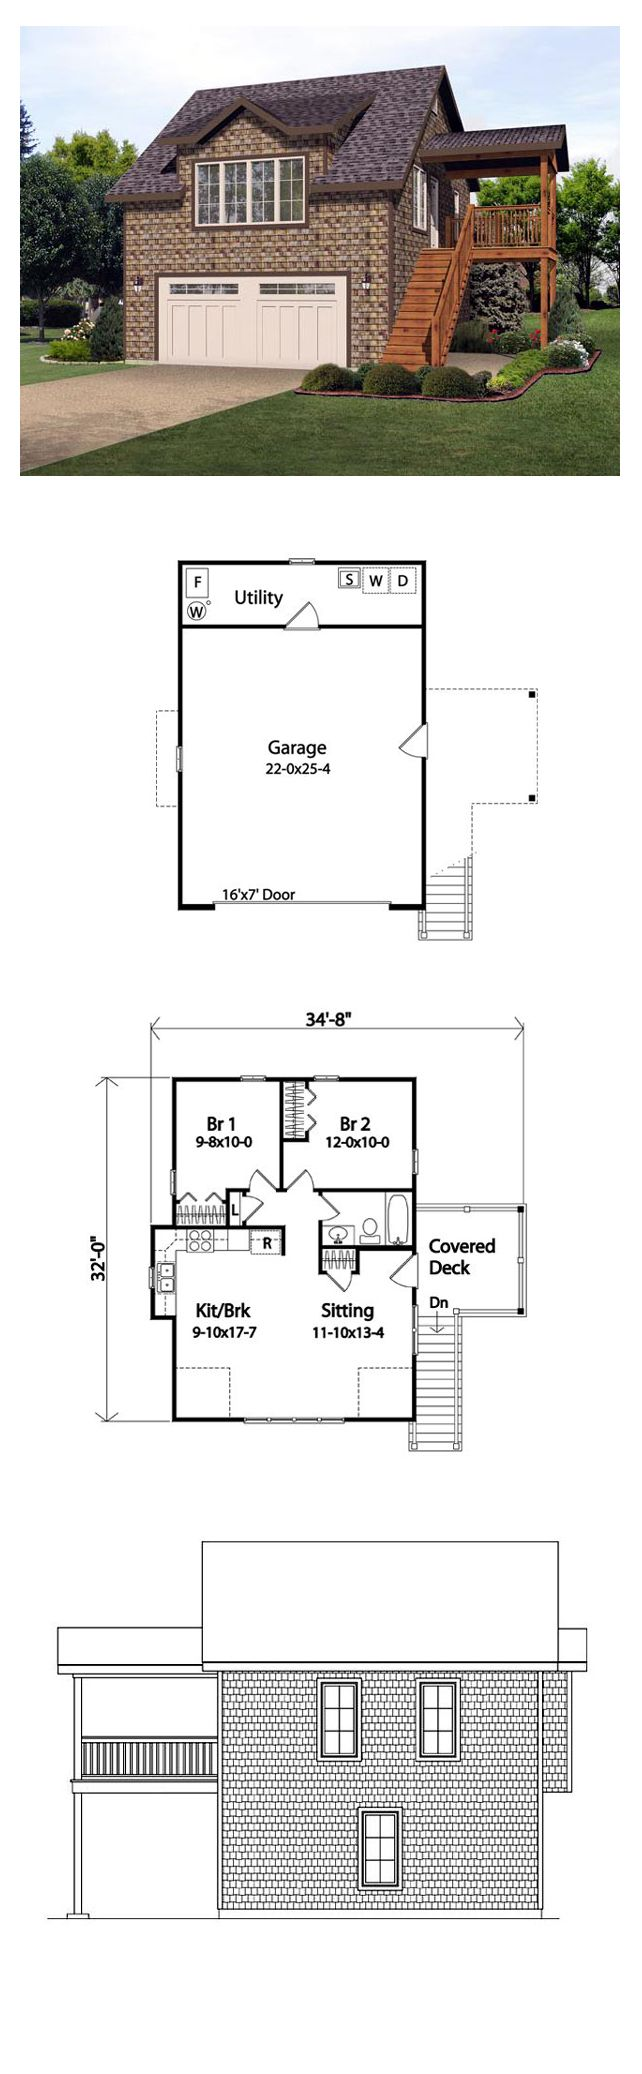 Garage With Inlaw Suite Plans Amazing House Plans